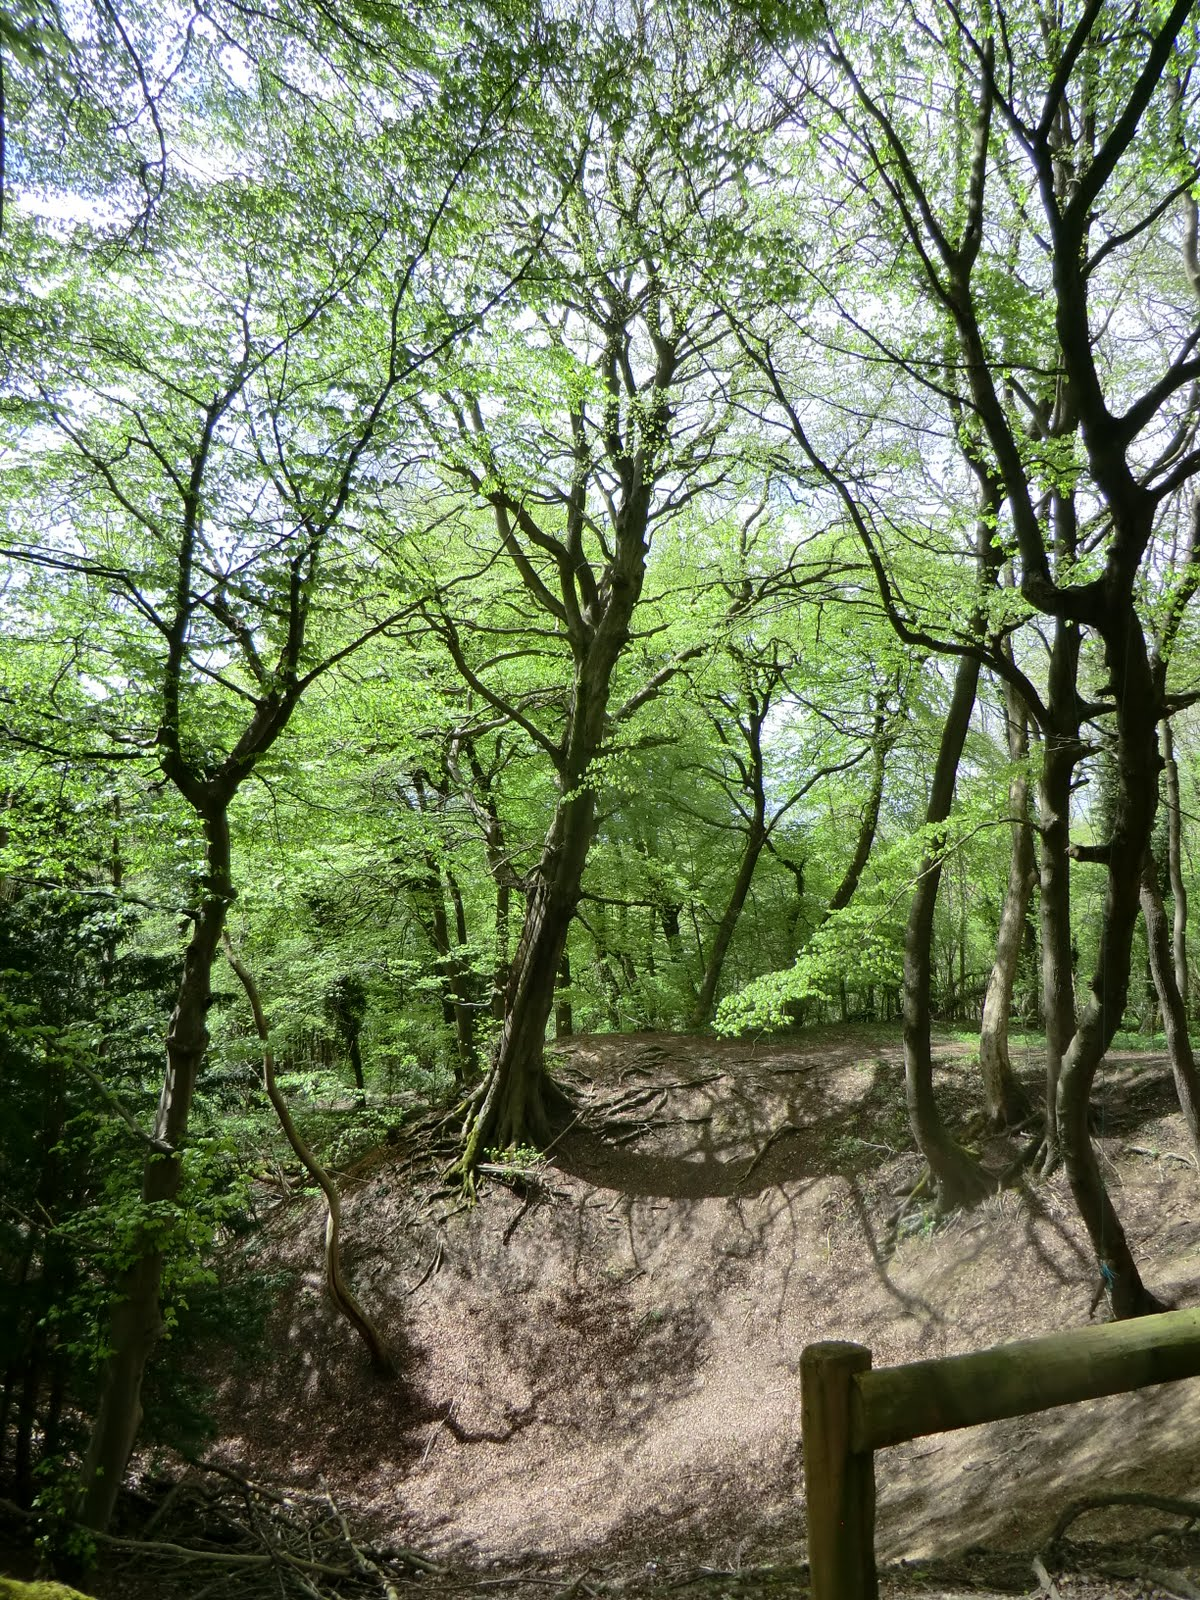 CIMG8012 Marl pit in Marden Park Woods